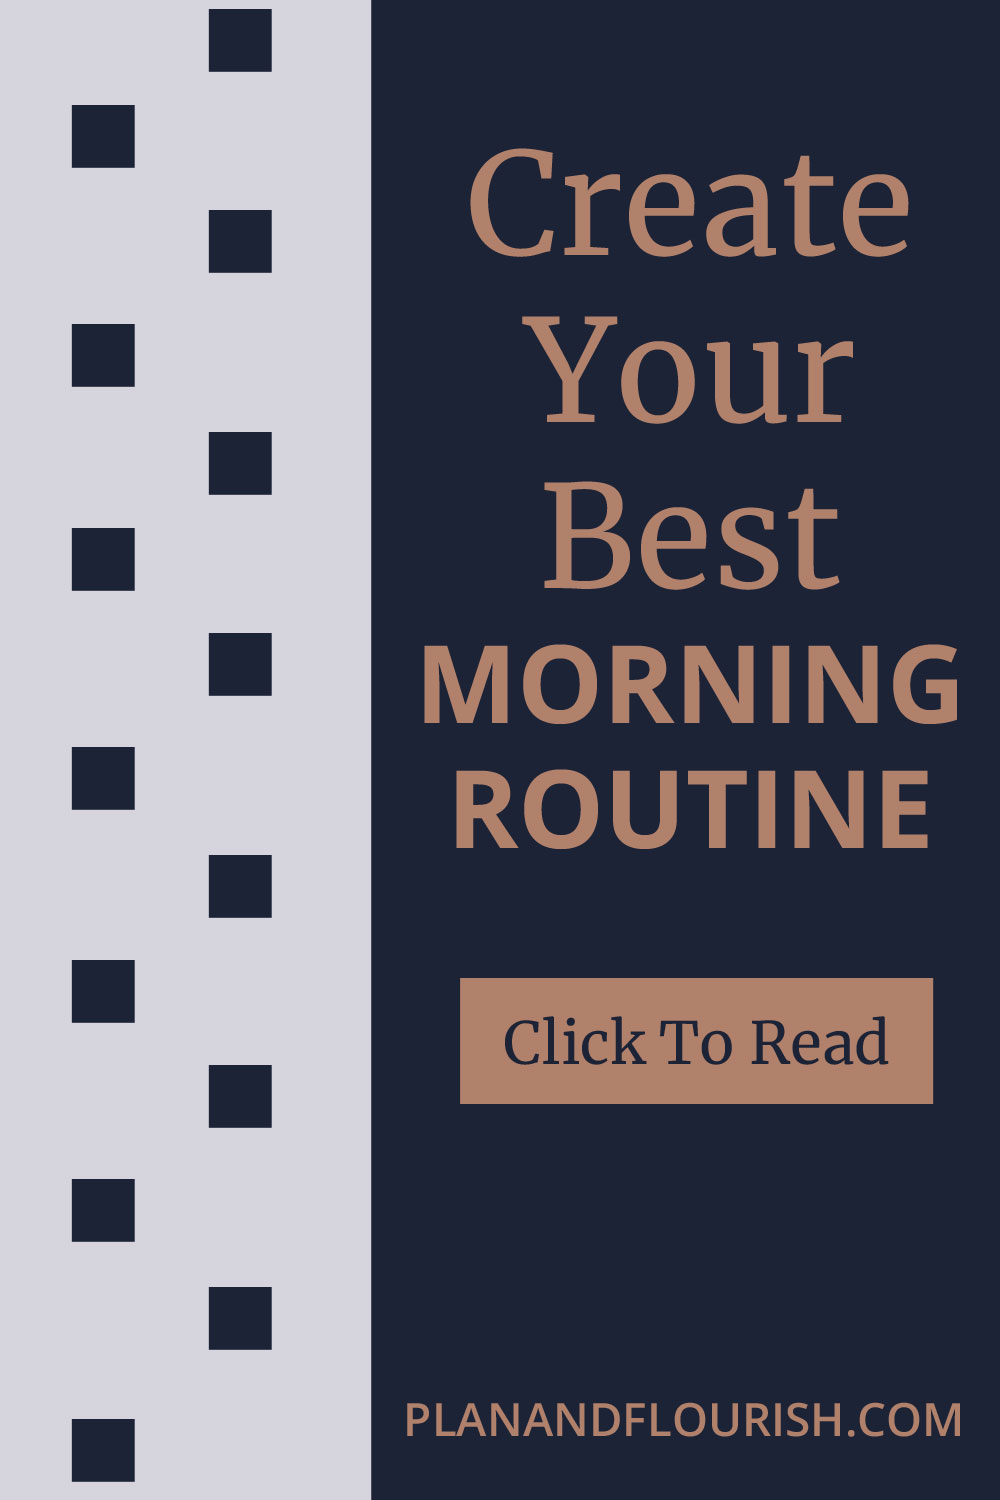 Learn how to create your best morning routine. | Read it now!